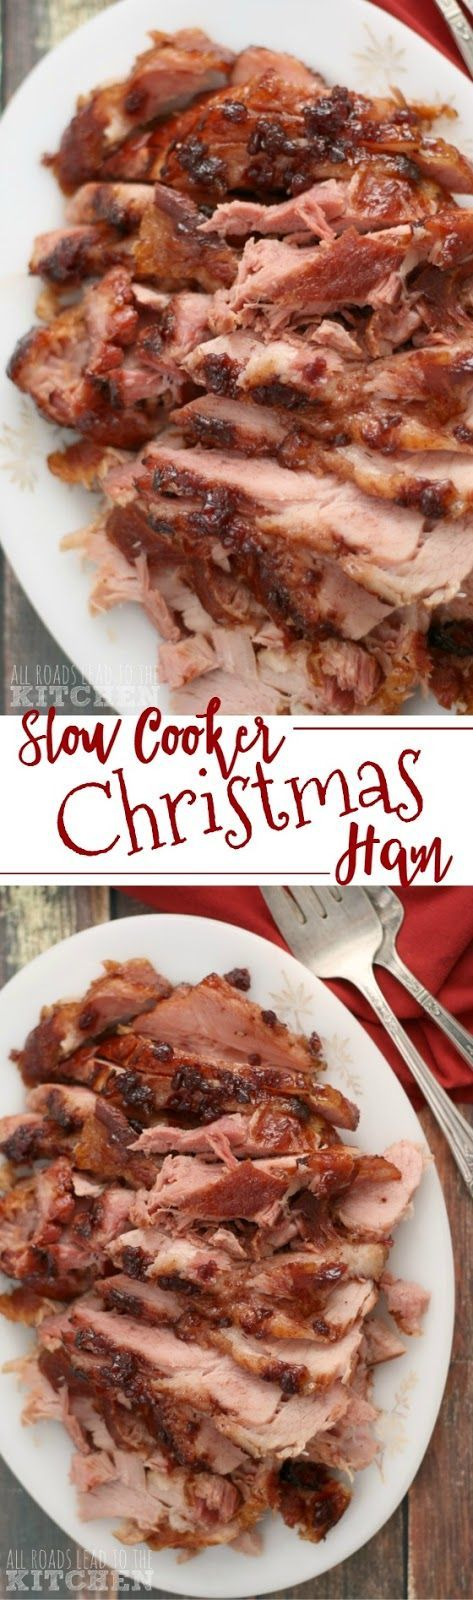 Slow Cooker Christmas Ham